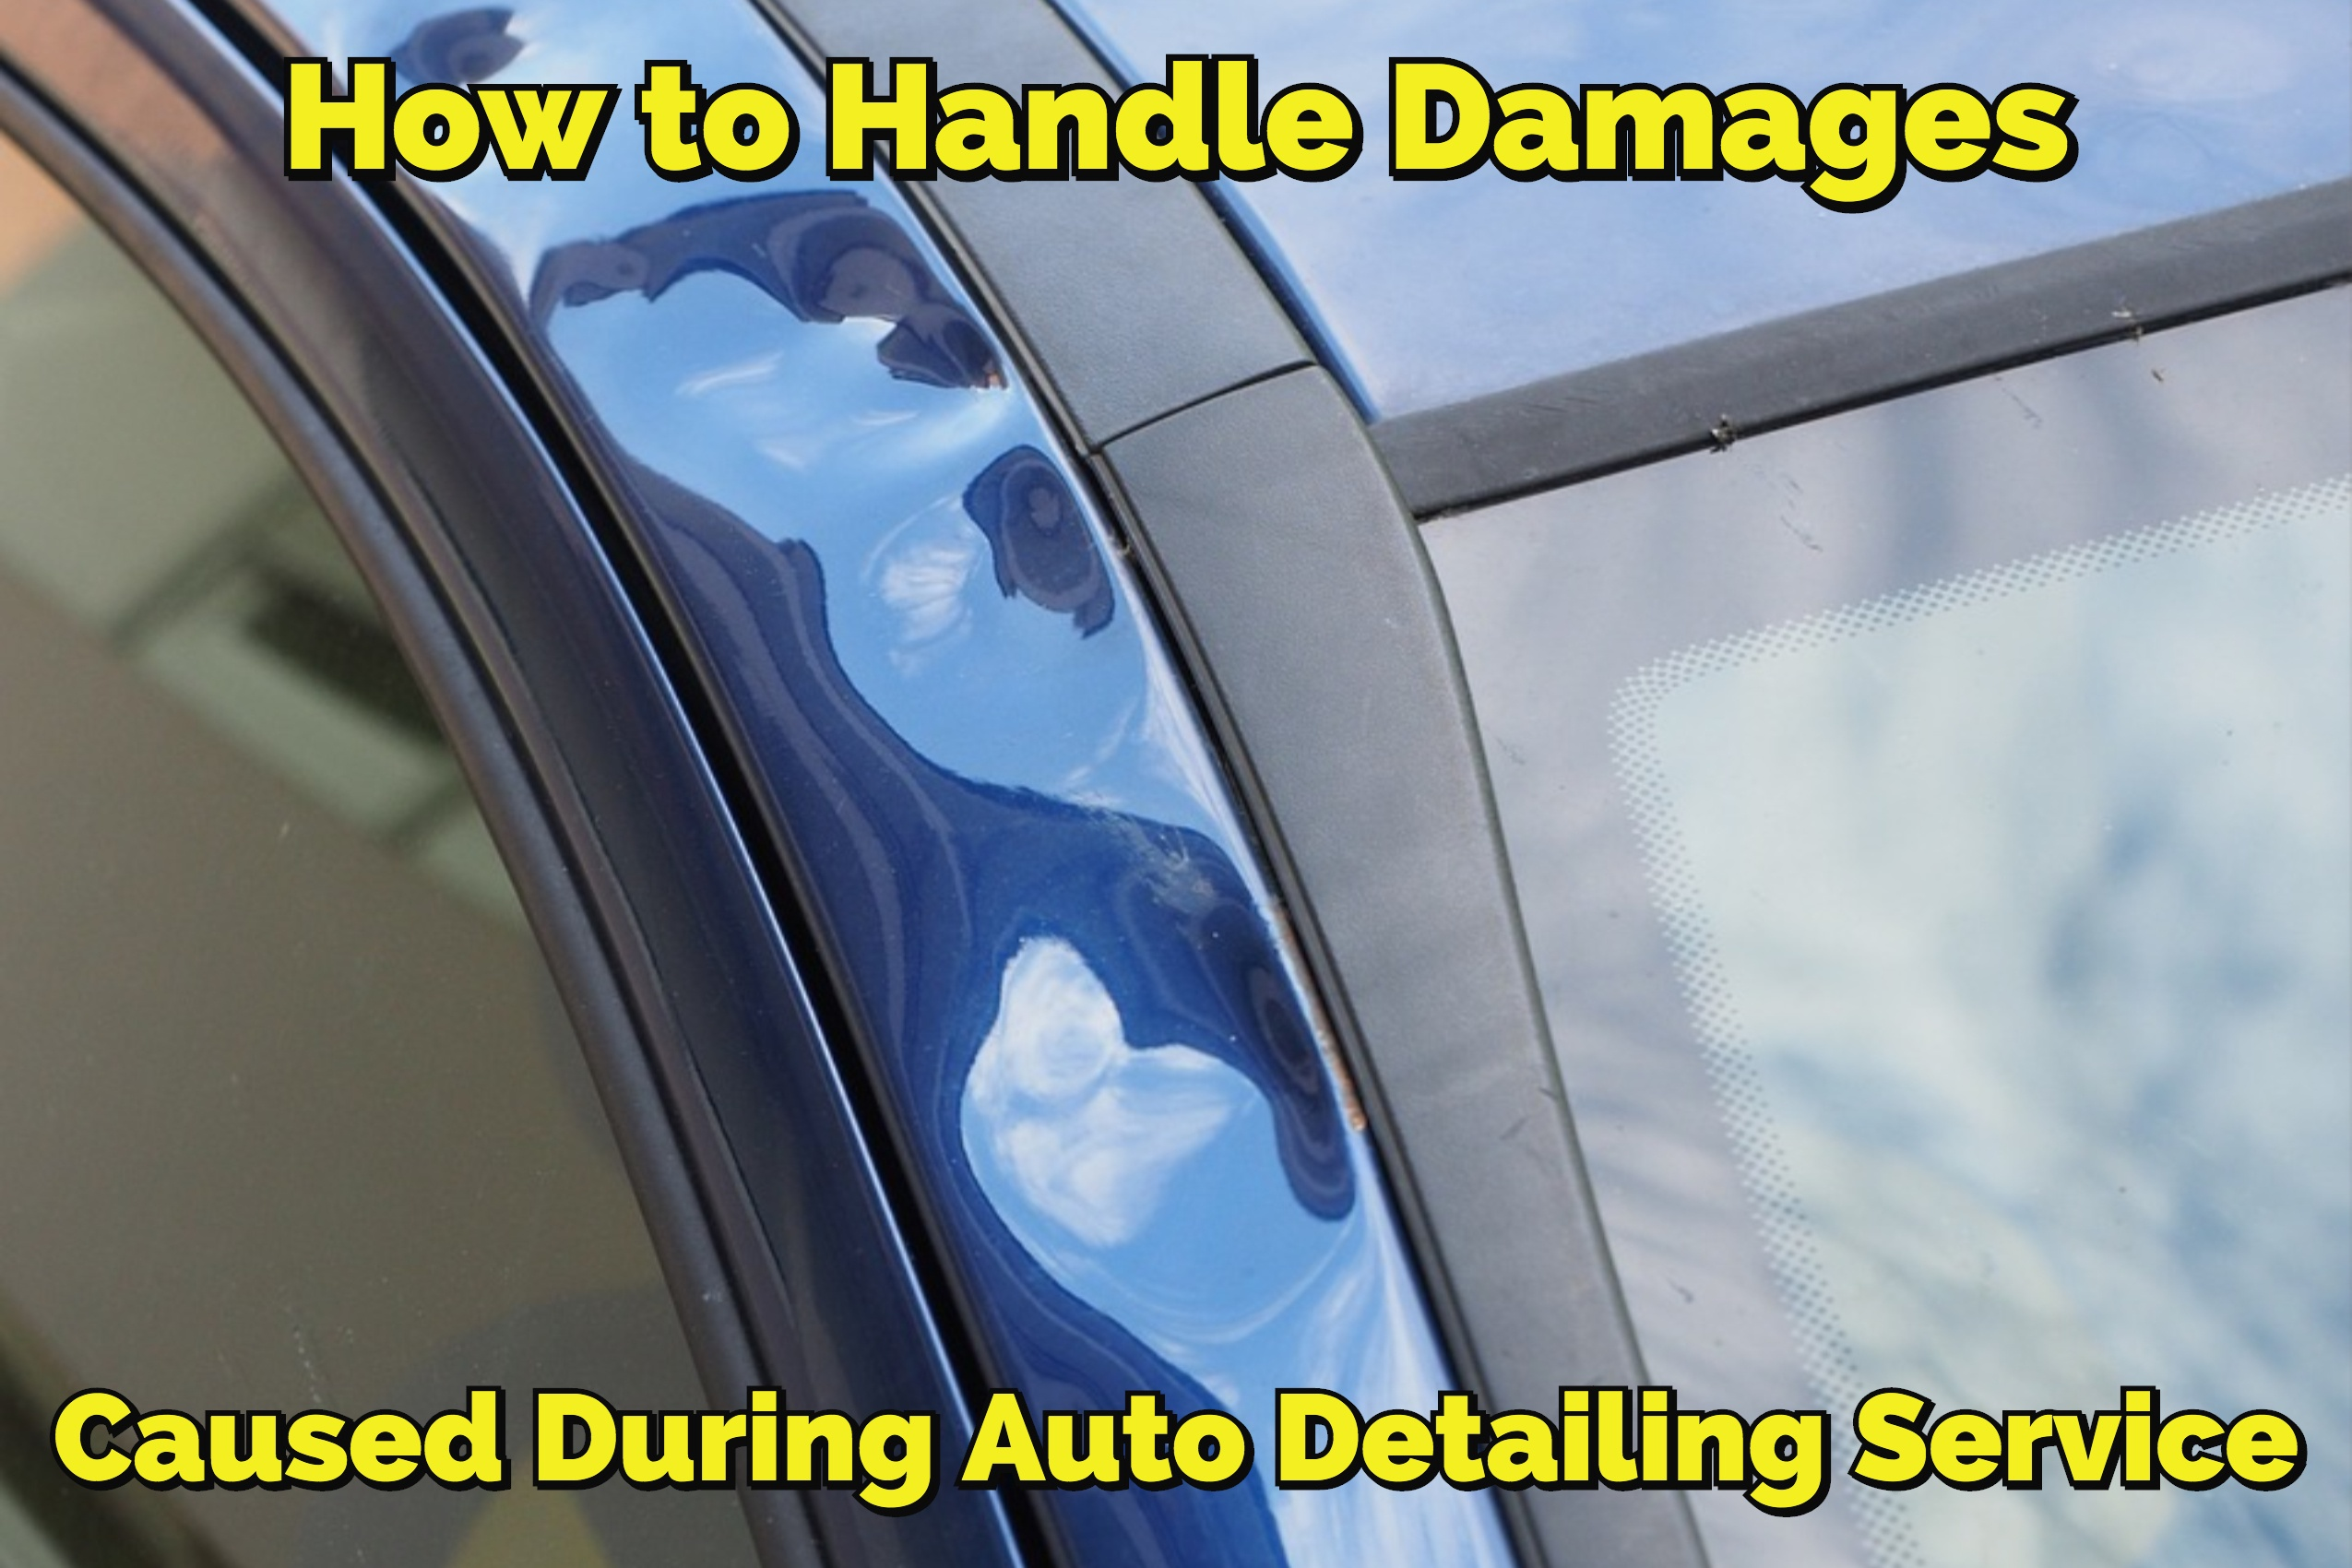 handling auto detailing service damages